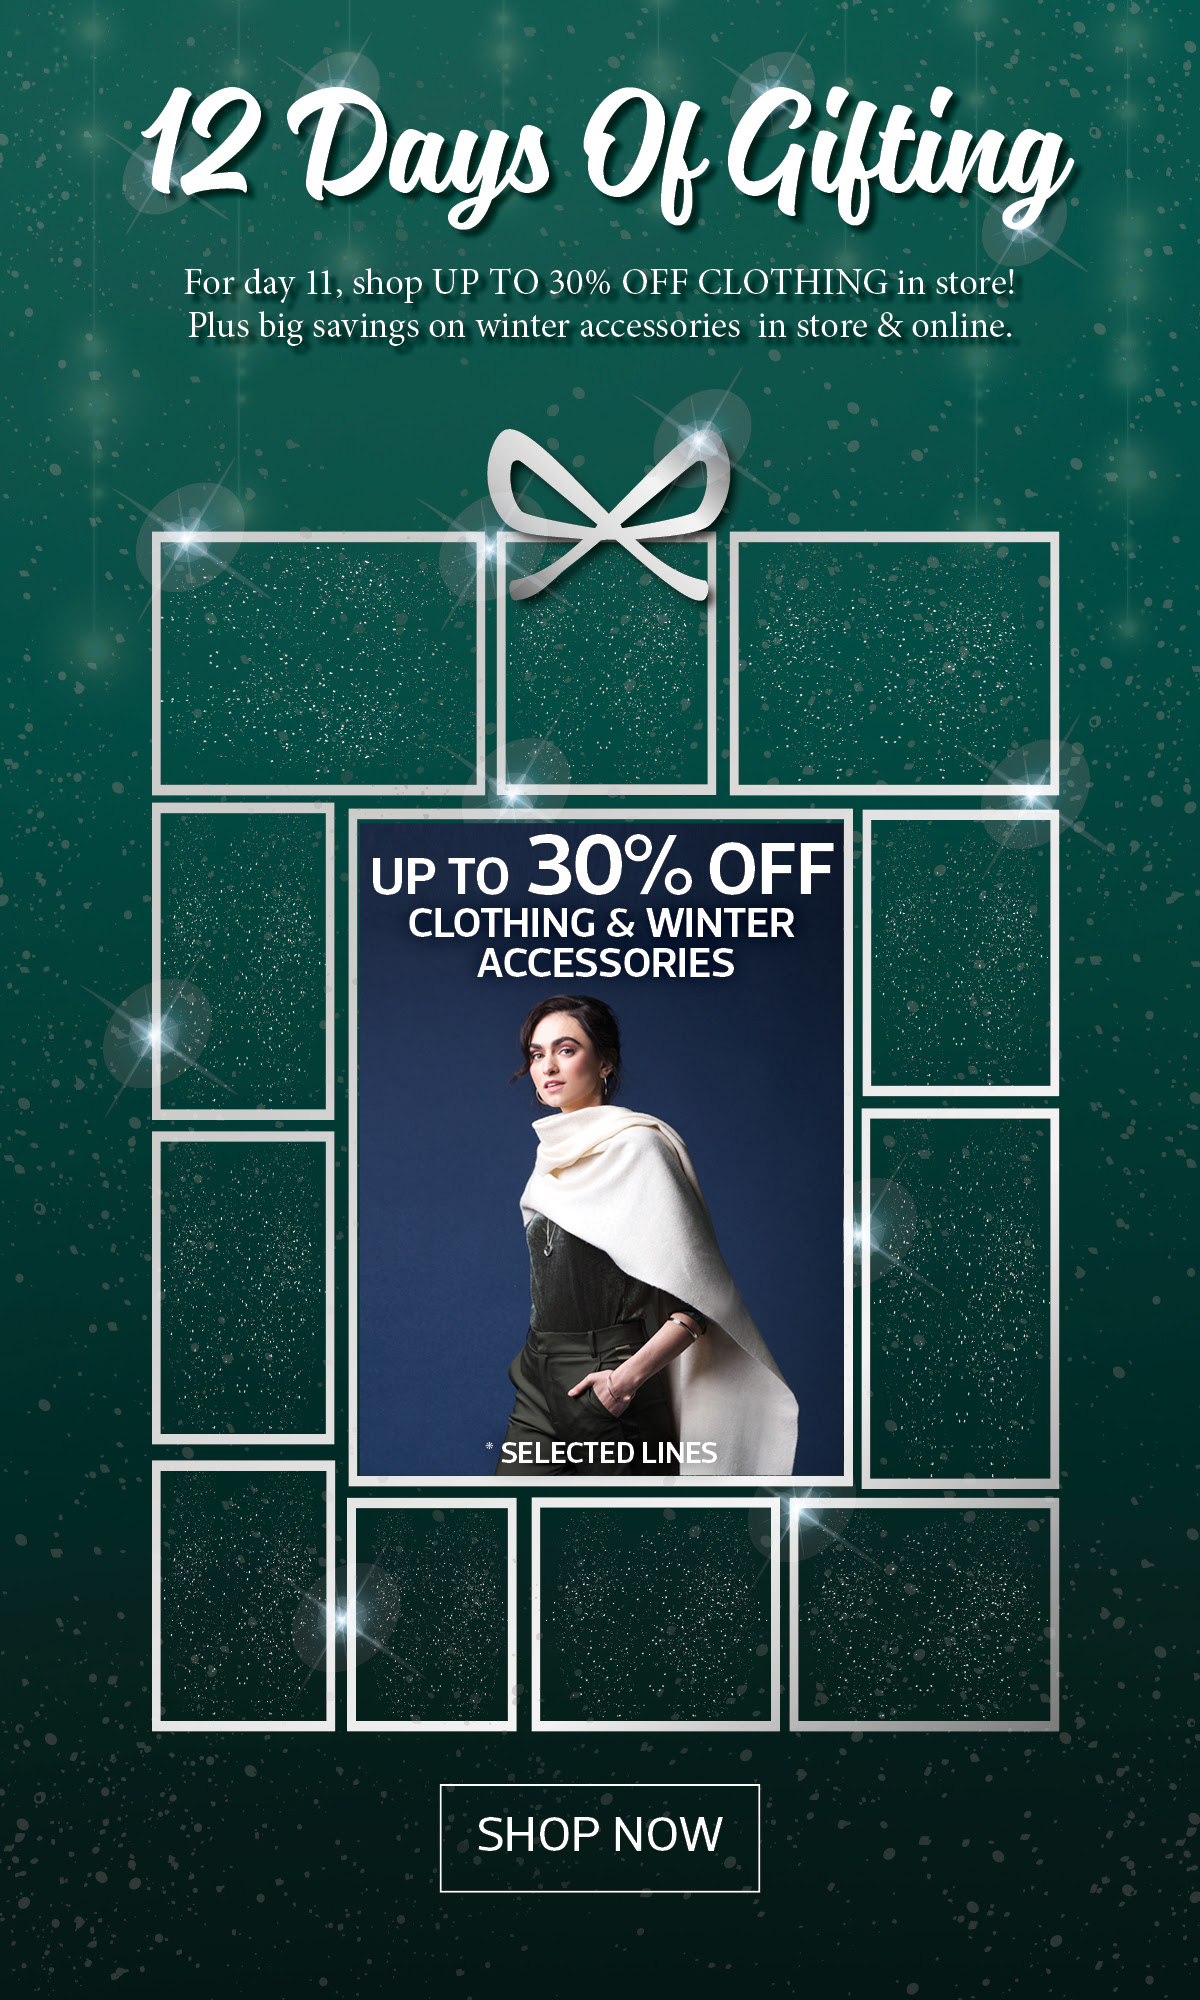 Kilkenny Shop - Up To 30% Off Clothing & Winter Accessories